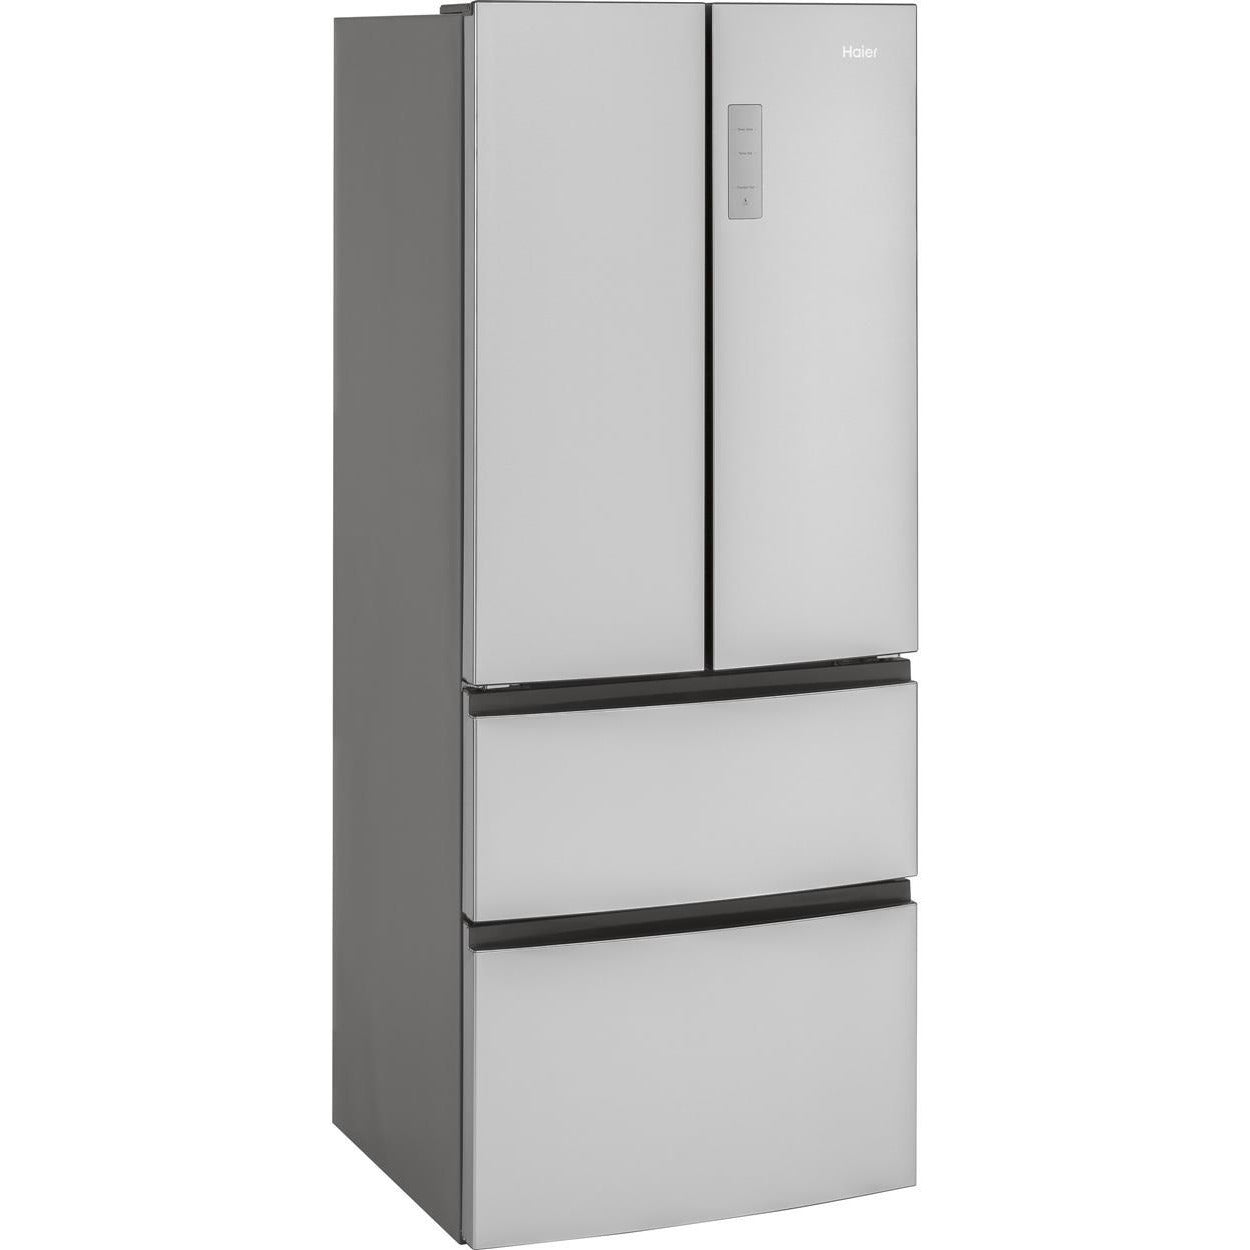 15.3 Cu. Ft. French Door Refrigerator - Casa Muebles